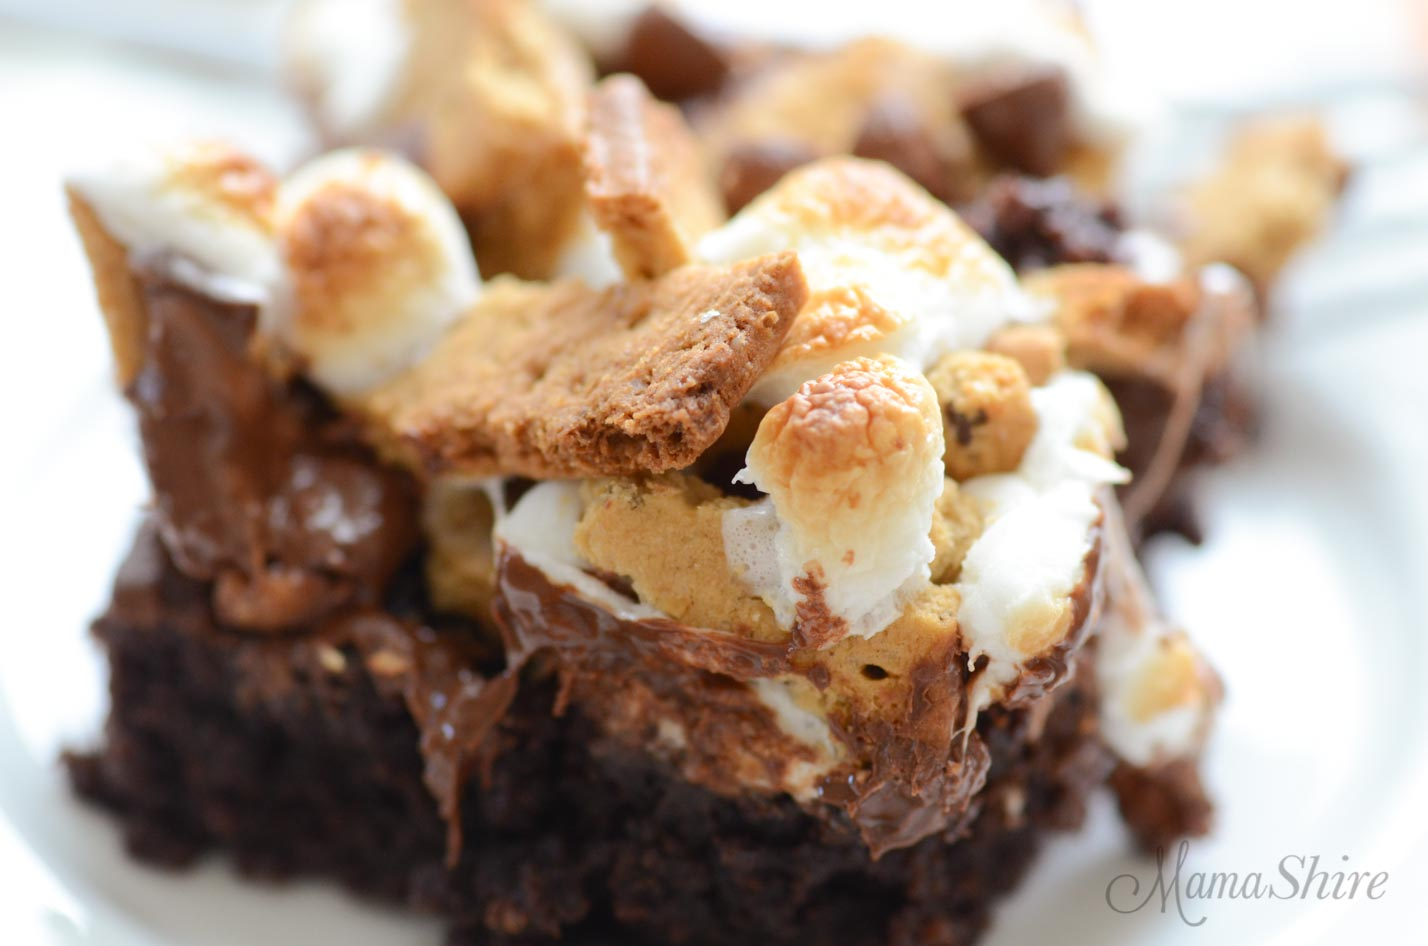 Melting chocolate and roasted marshmallows cover a gluten-free s'mores brownie.